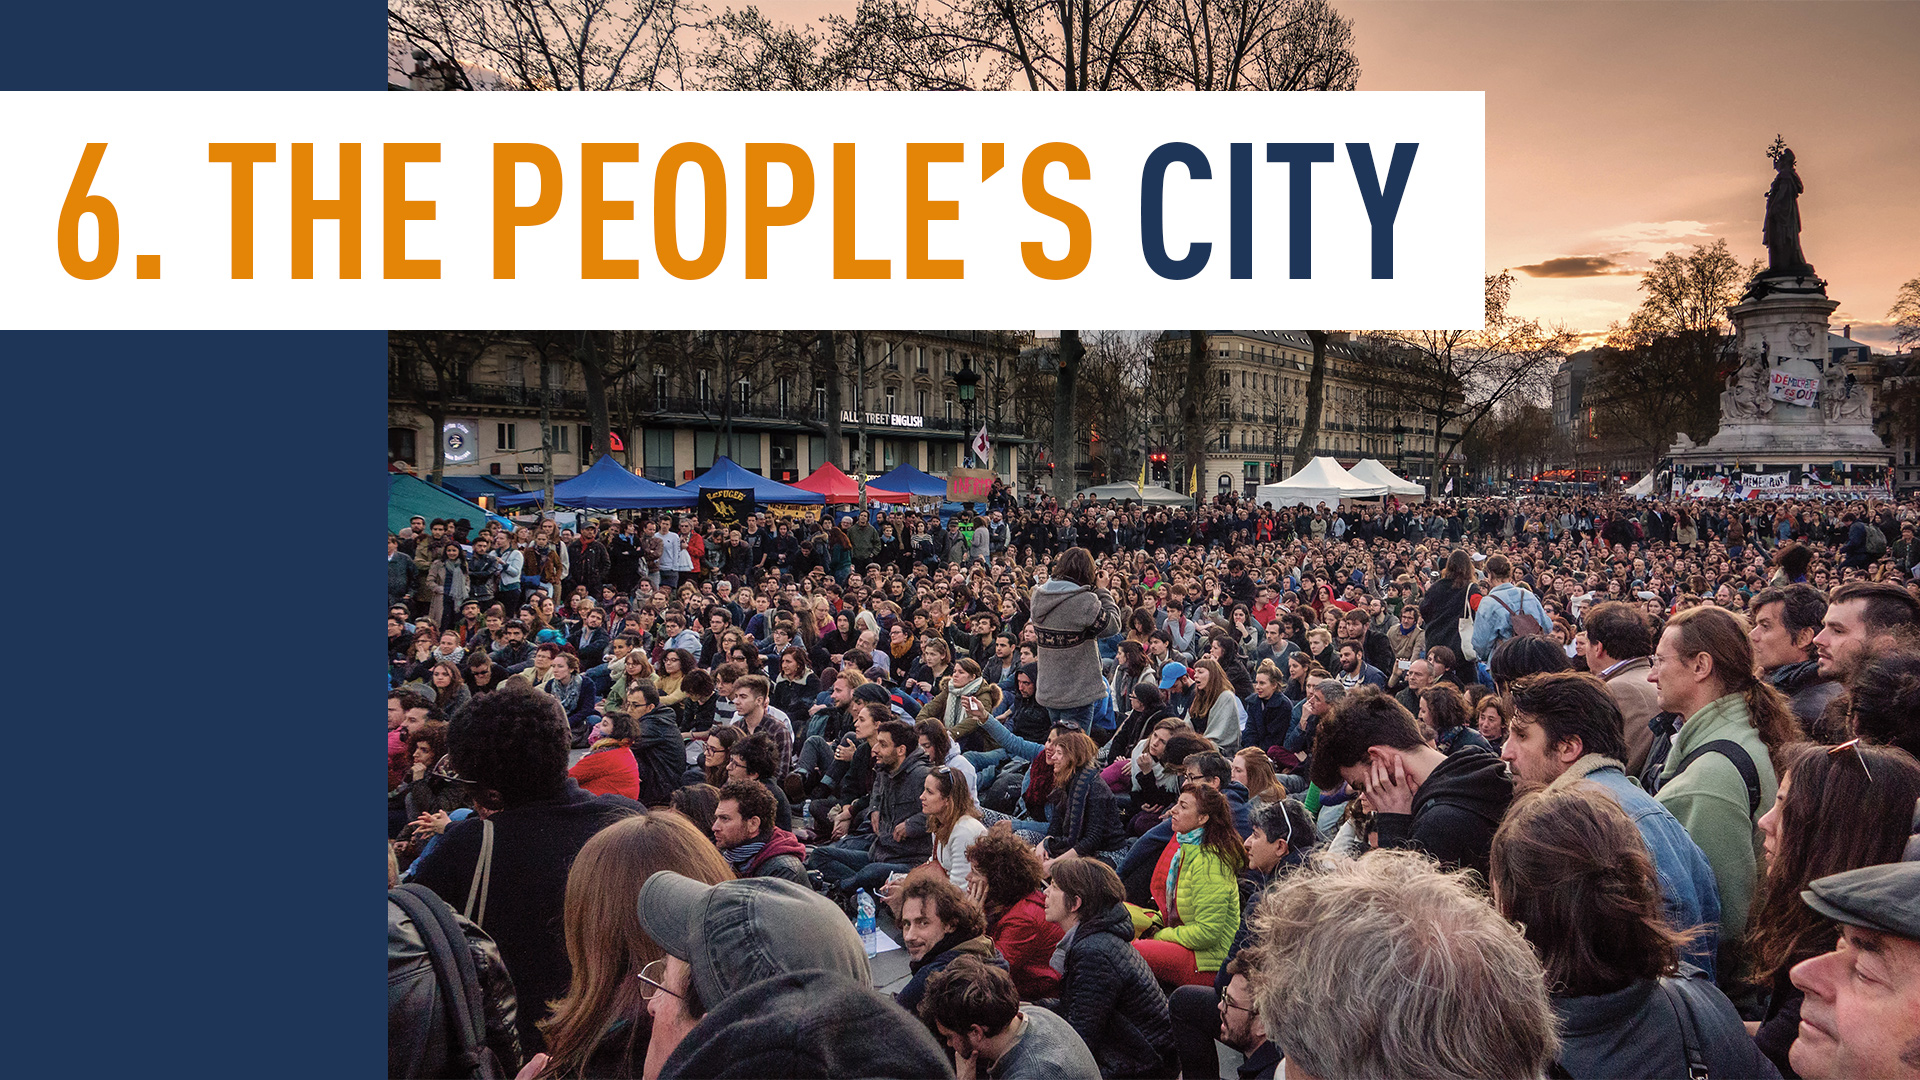 THE PEOPLE'S CITY